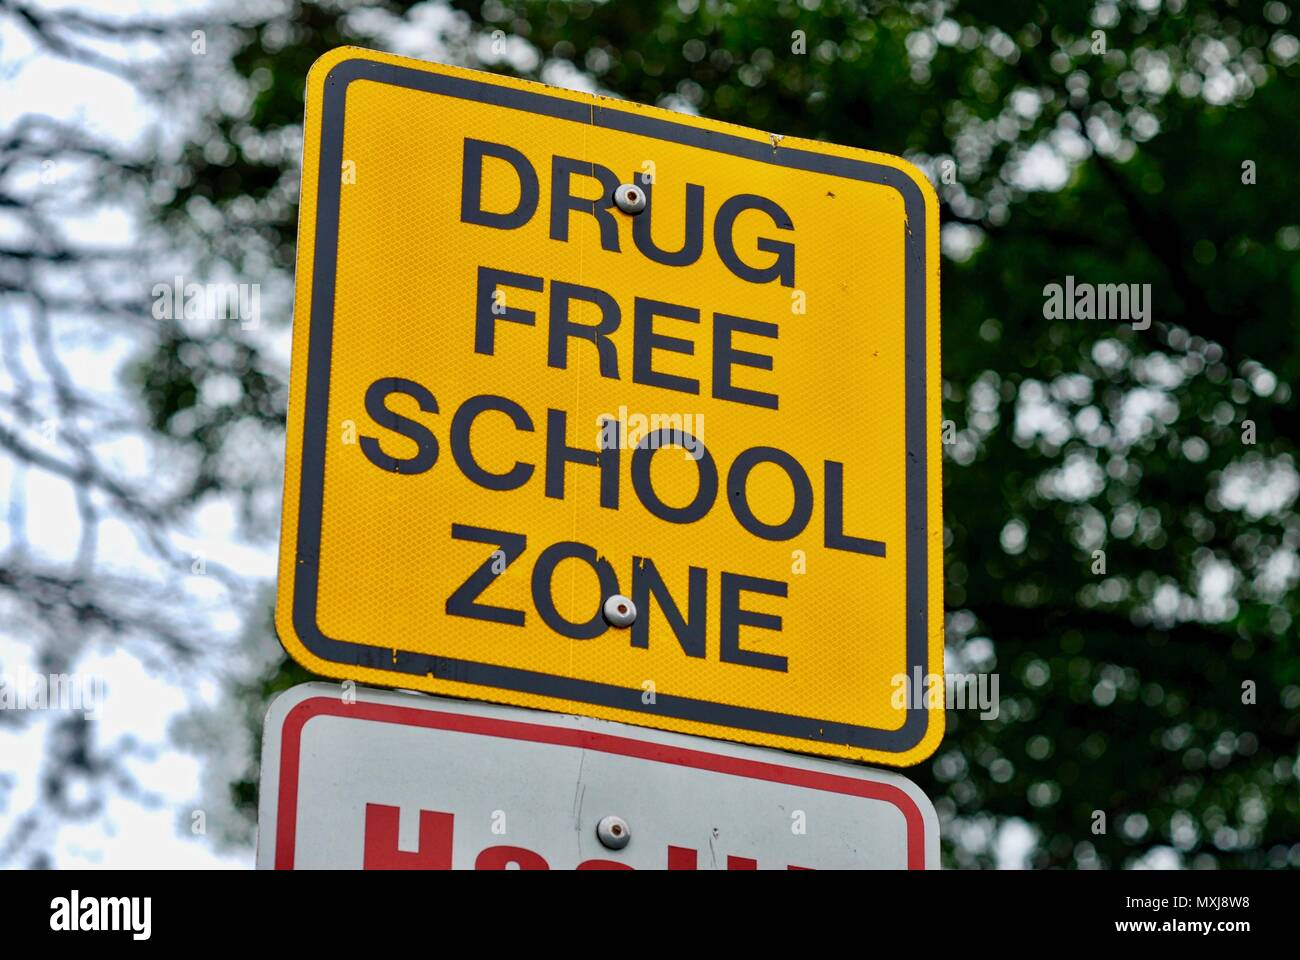 Close-up image of a sign near a school warning that it is a 'drug free school zone'. Background includes tree limbs and the sky. - Stock Image